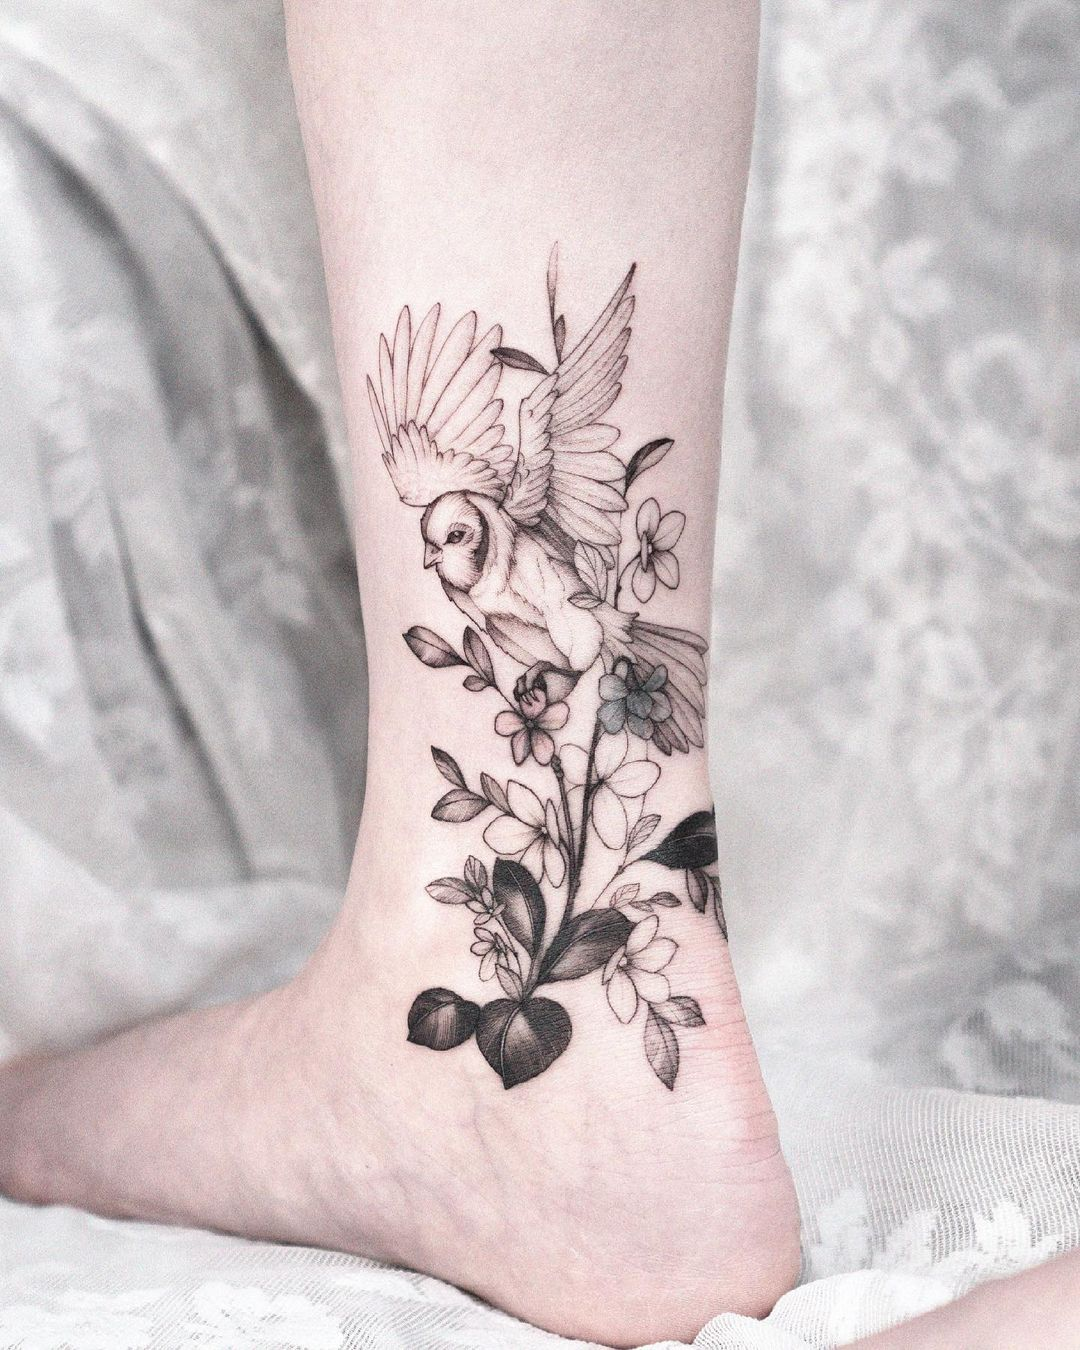 15+ Super Cool Tattoos For Women images 4